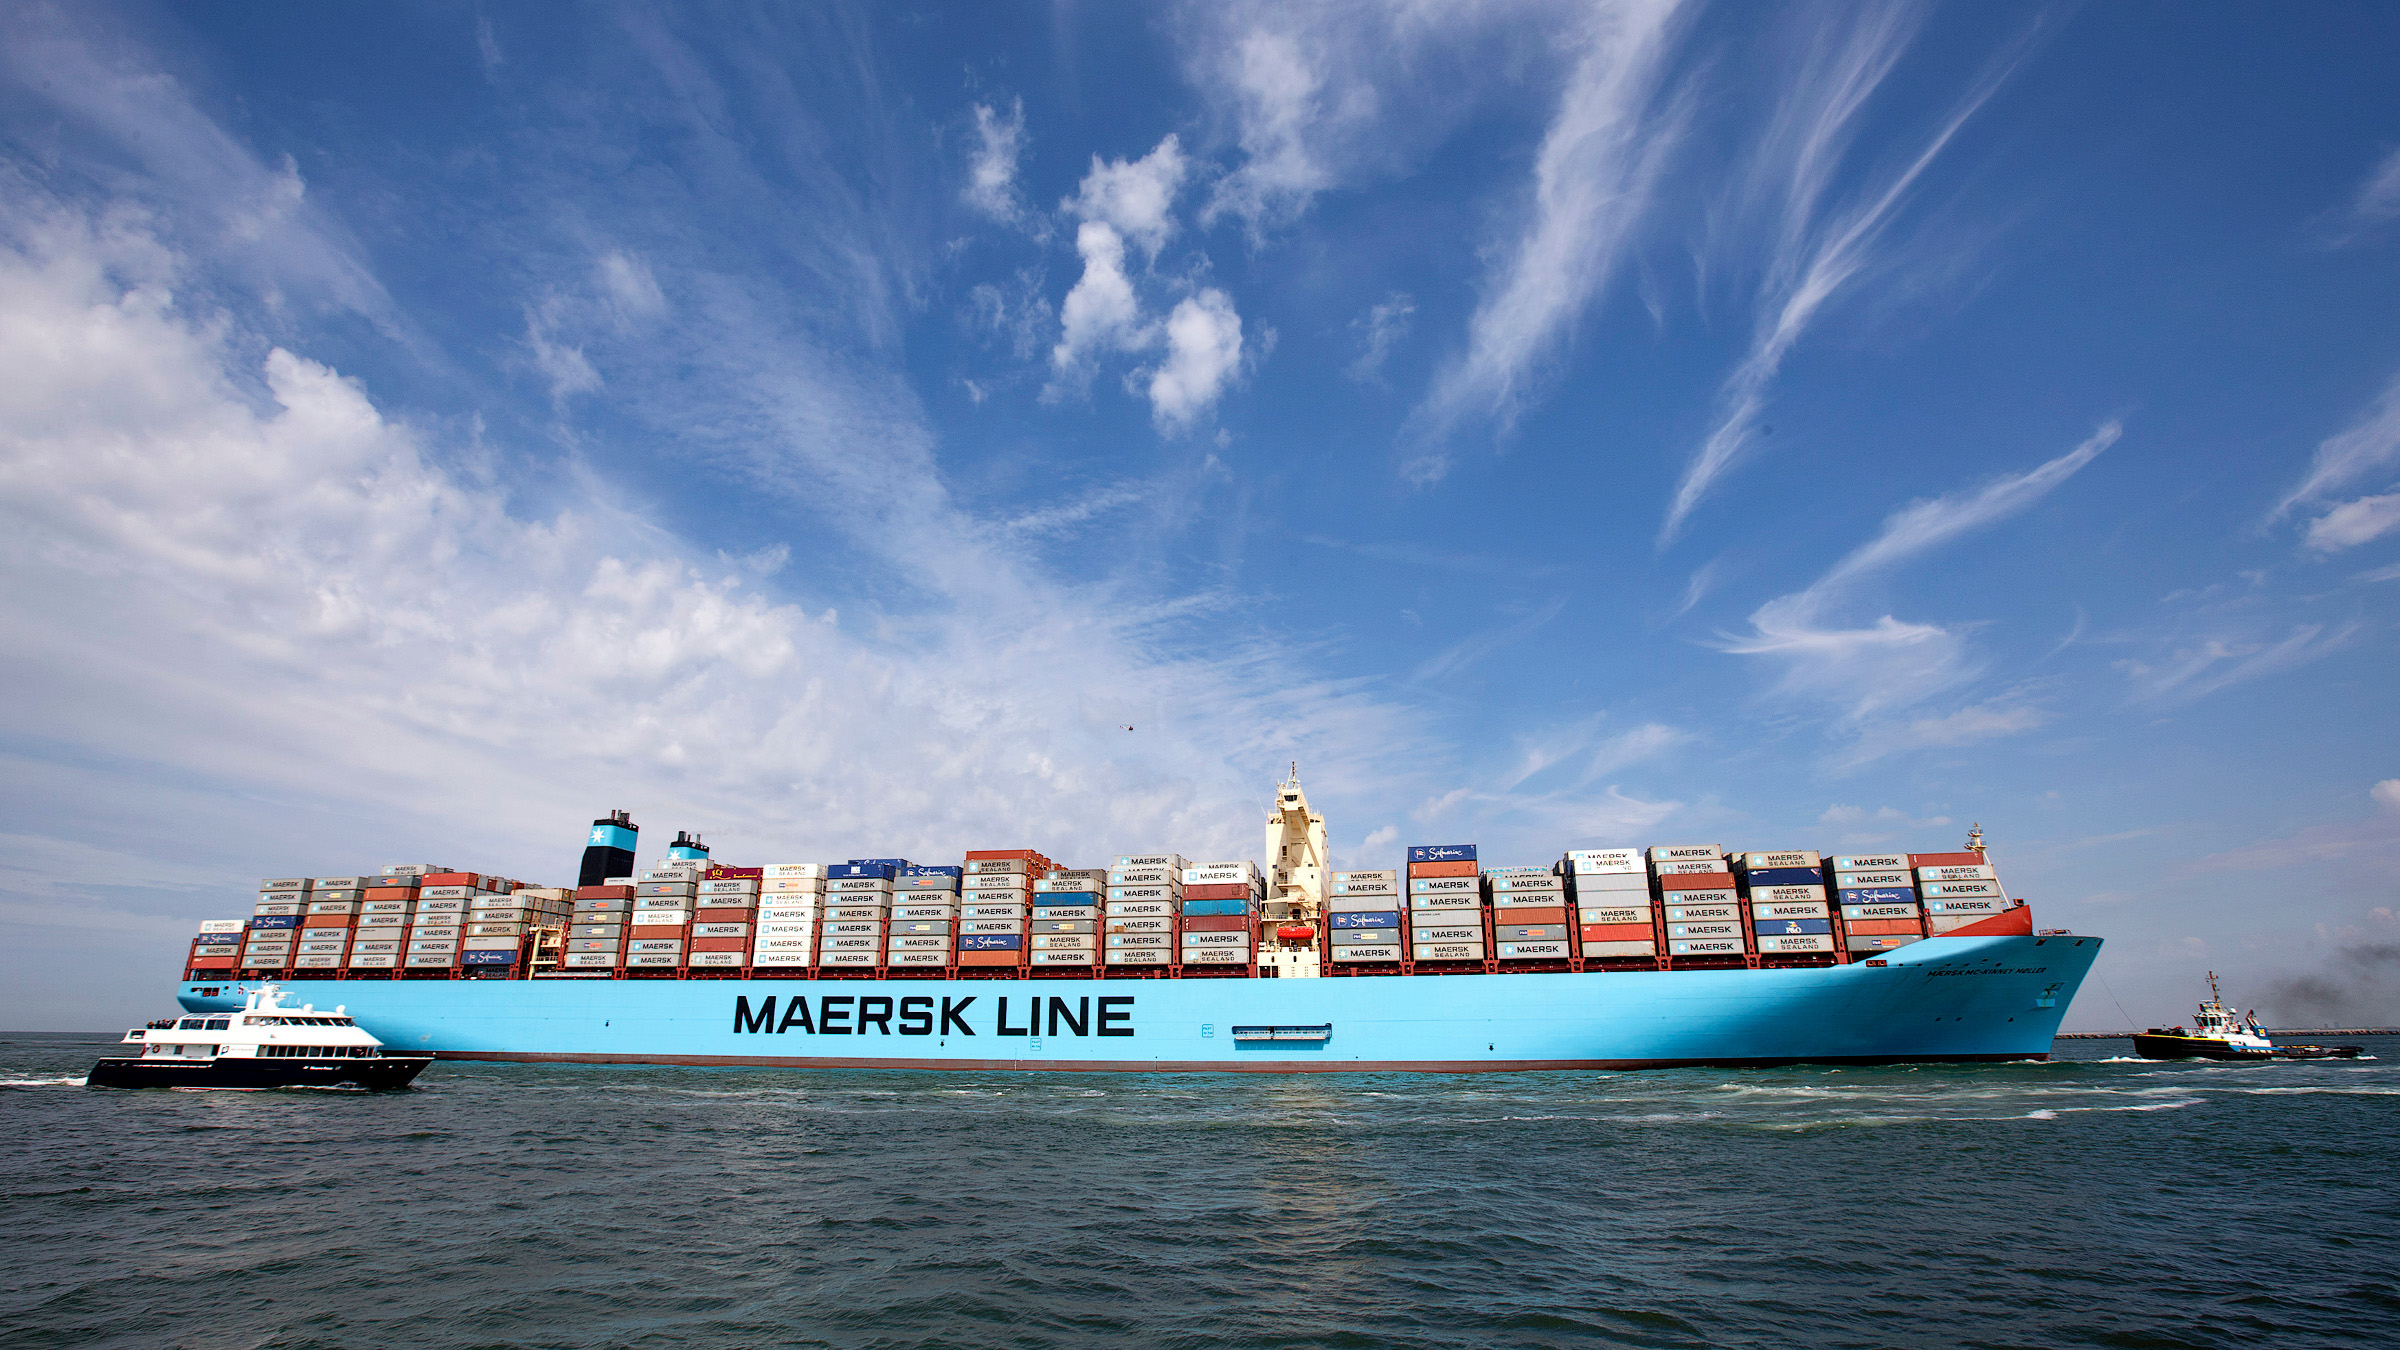 The MV Maersk Mc-Kinney Moller, the world's biggest container ship, arrives at the harbour of Rotterdam August 16, 2013. The 55,000 tonne ship, named after the son of the founder of the oil and shipping group A.P. Moller-Maersk, has a length of 400 meters and cost $185 million. A.P. Moller-Maersk raised its annual profit forecast for the business on Friday, helped by tighter cost controls and lower fuel prices. Maersk shares jumped 6 percent to their highest in 1-1/2 years as investors welcomed a near-doubling of second-quarter earnings at container arm Maersk Line, which generates nearly half of group revenue and is helping counter weakness in the company's oil business.